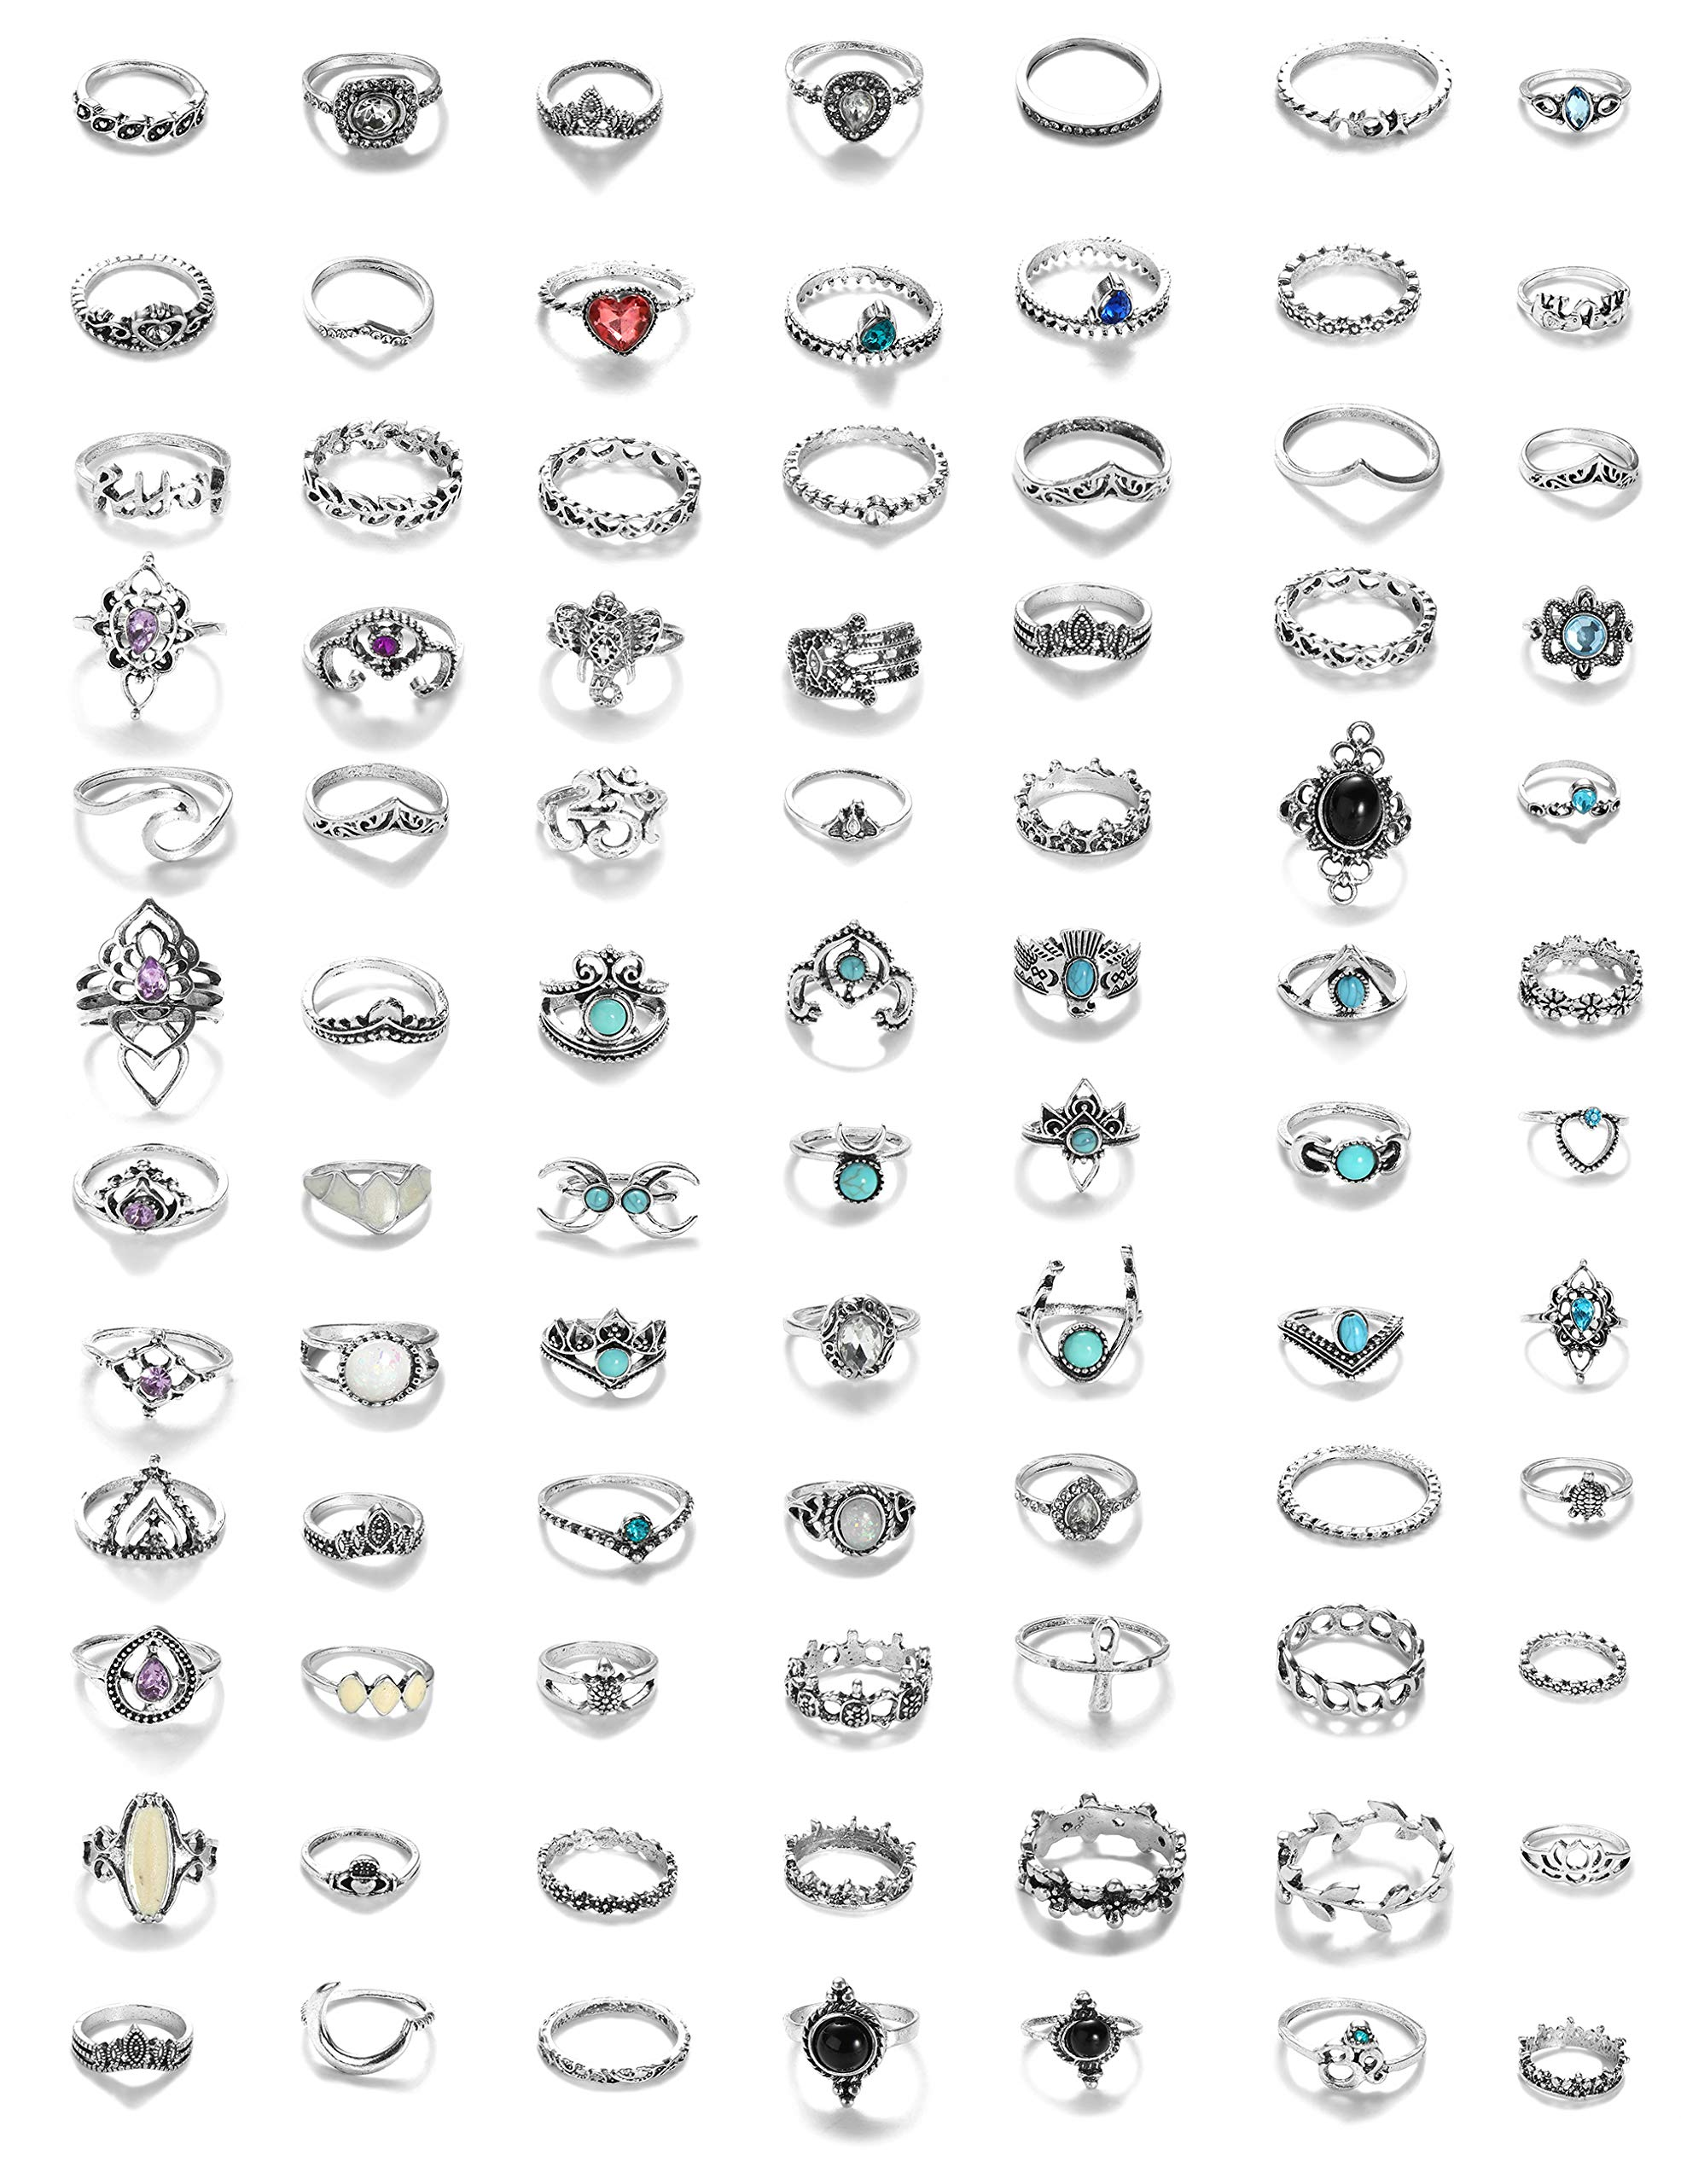 LOYALLOOK 84Pcs Midi Ring Bohemian Knuckle Ring Sets Fashion Finger Vintage Silver Stackable Rings for Women Girls Knuckle Midi Rings